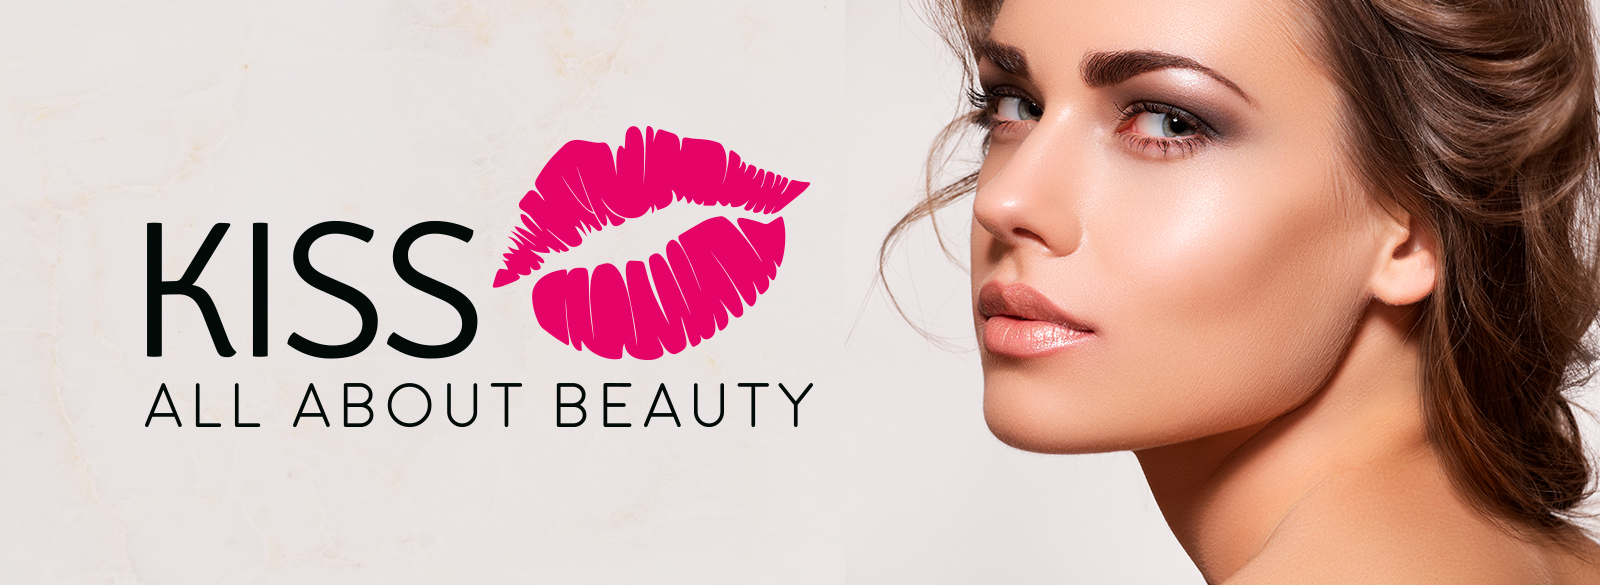 Kiss All About Beauty